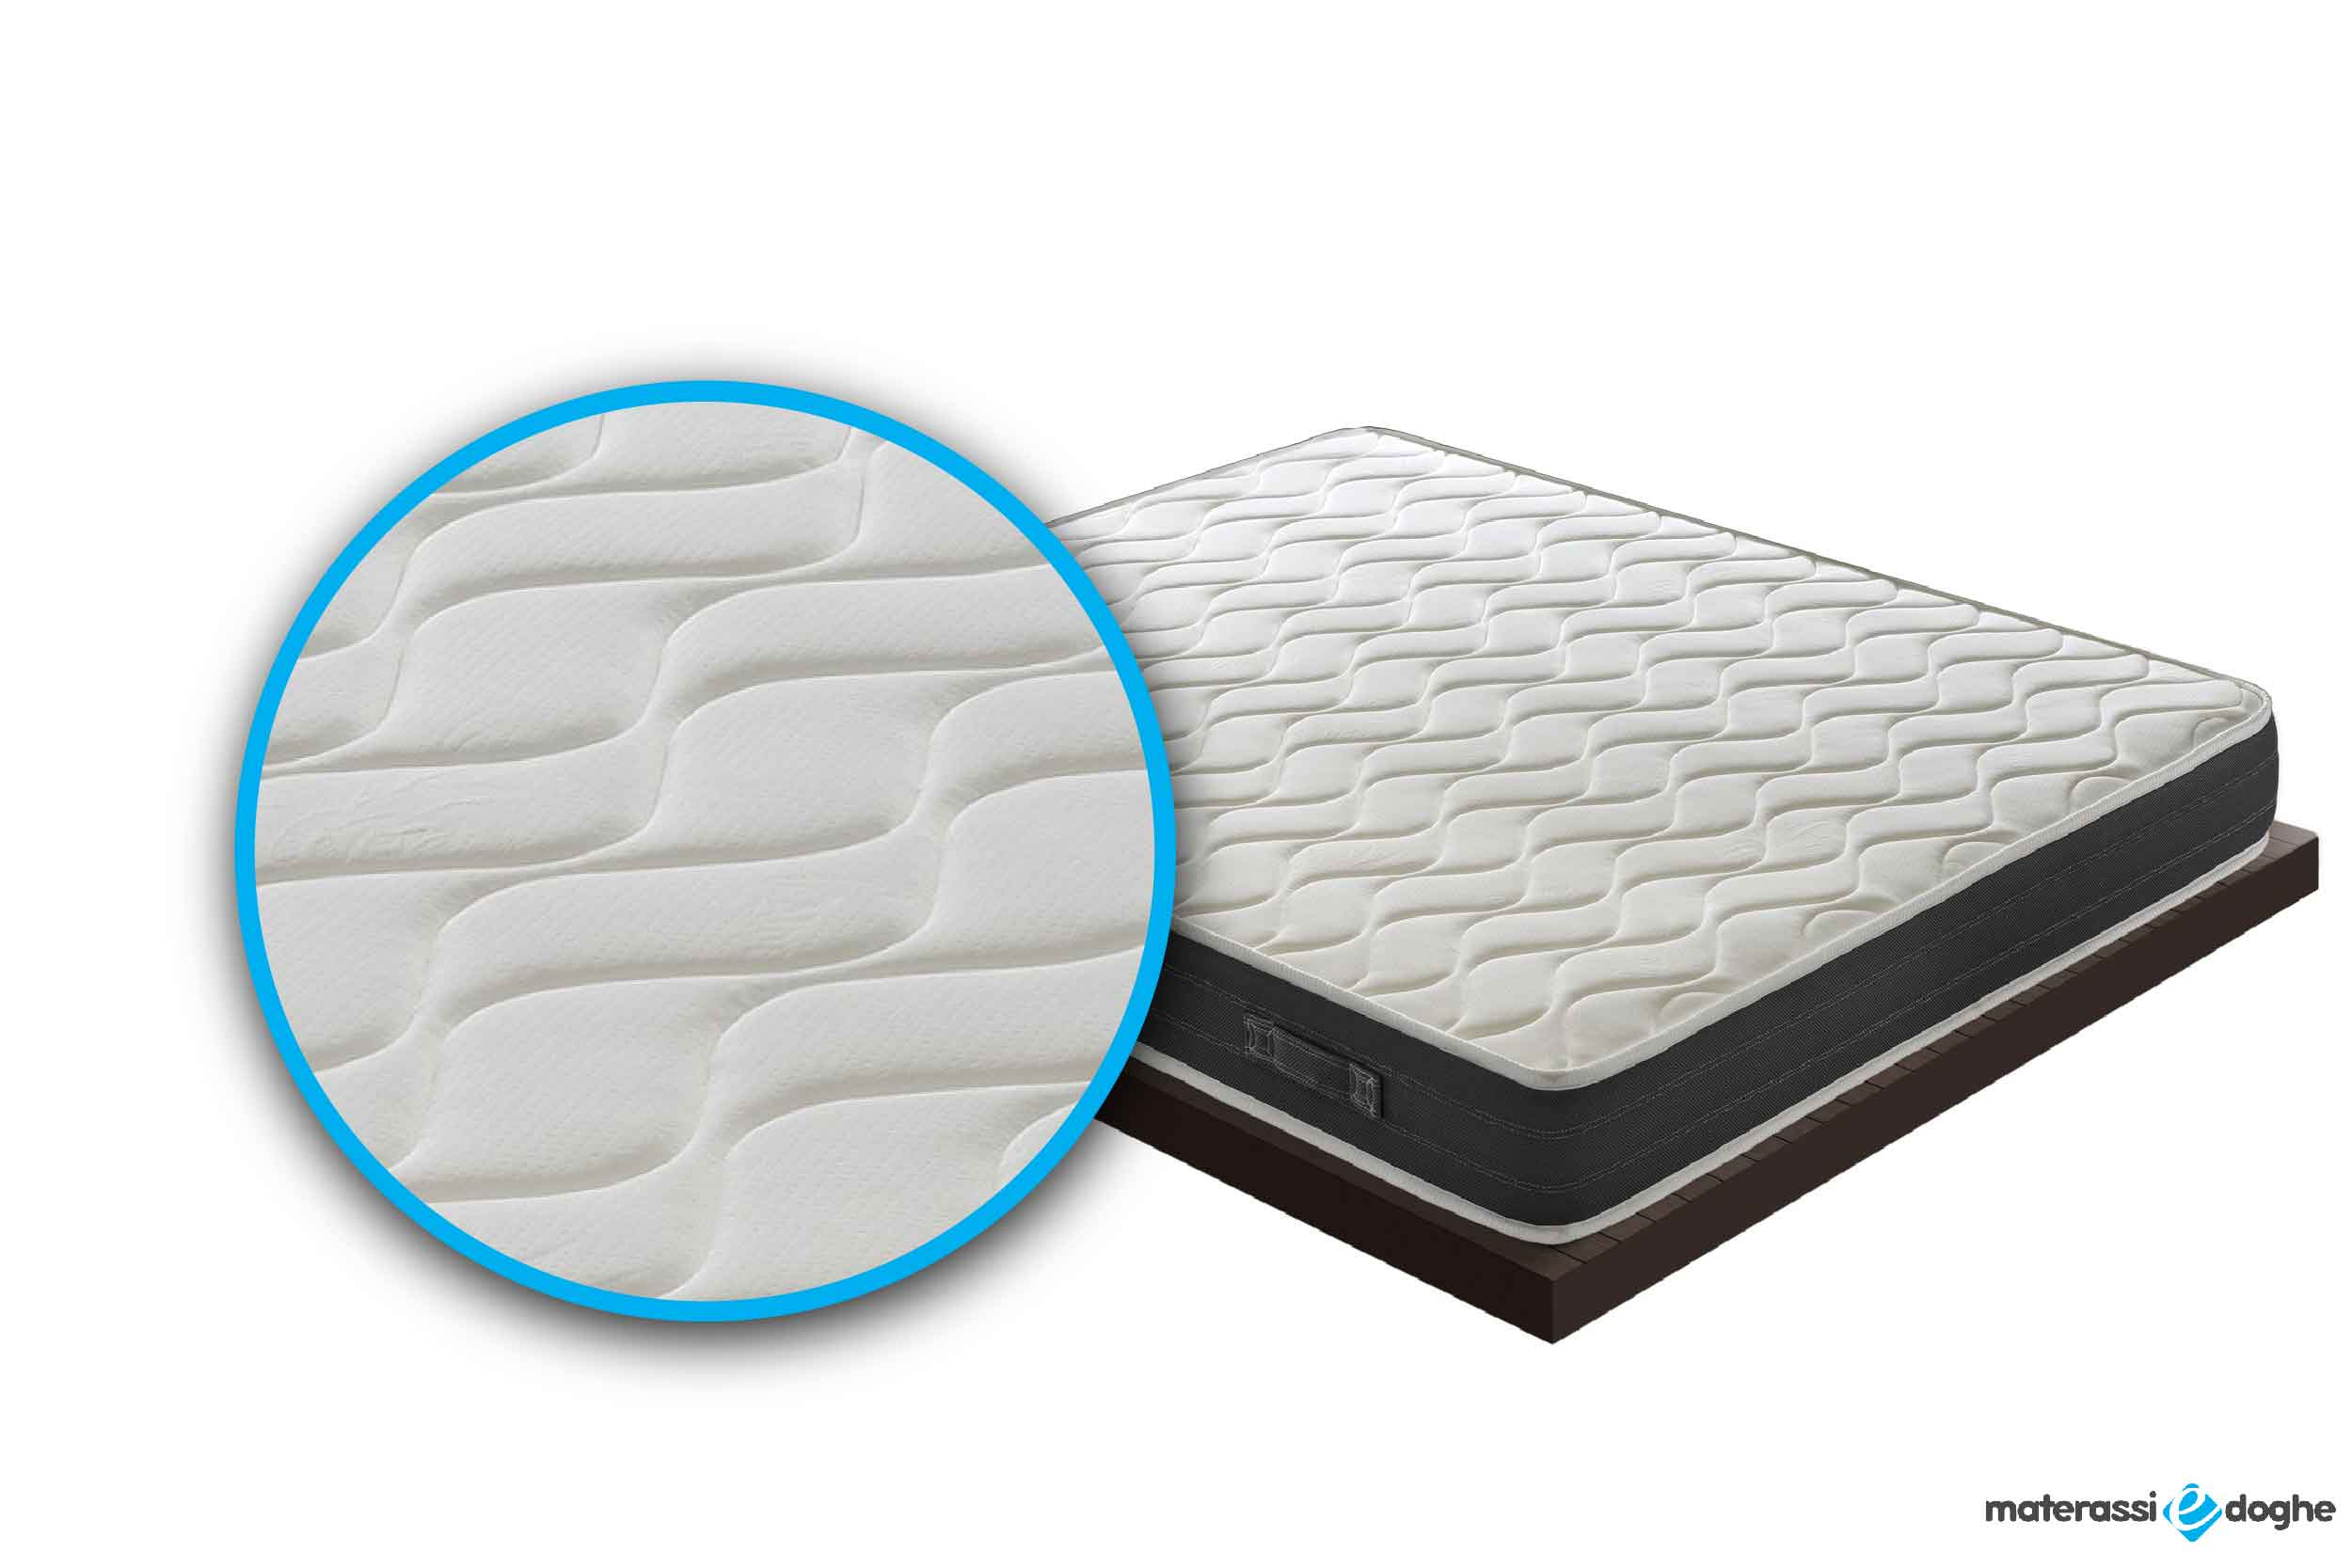 Quilted Mattress Zara With Memory Foam Mymemory Materassi E Doghe